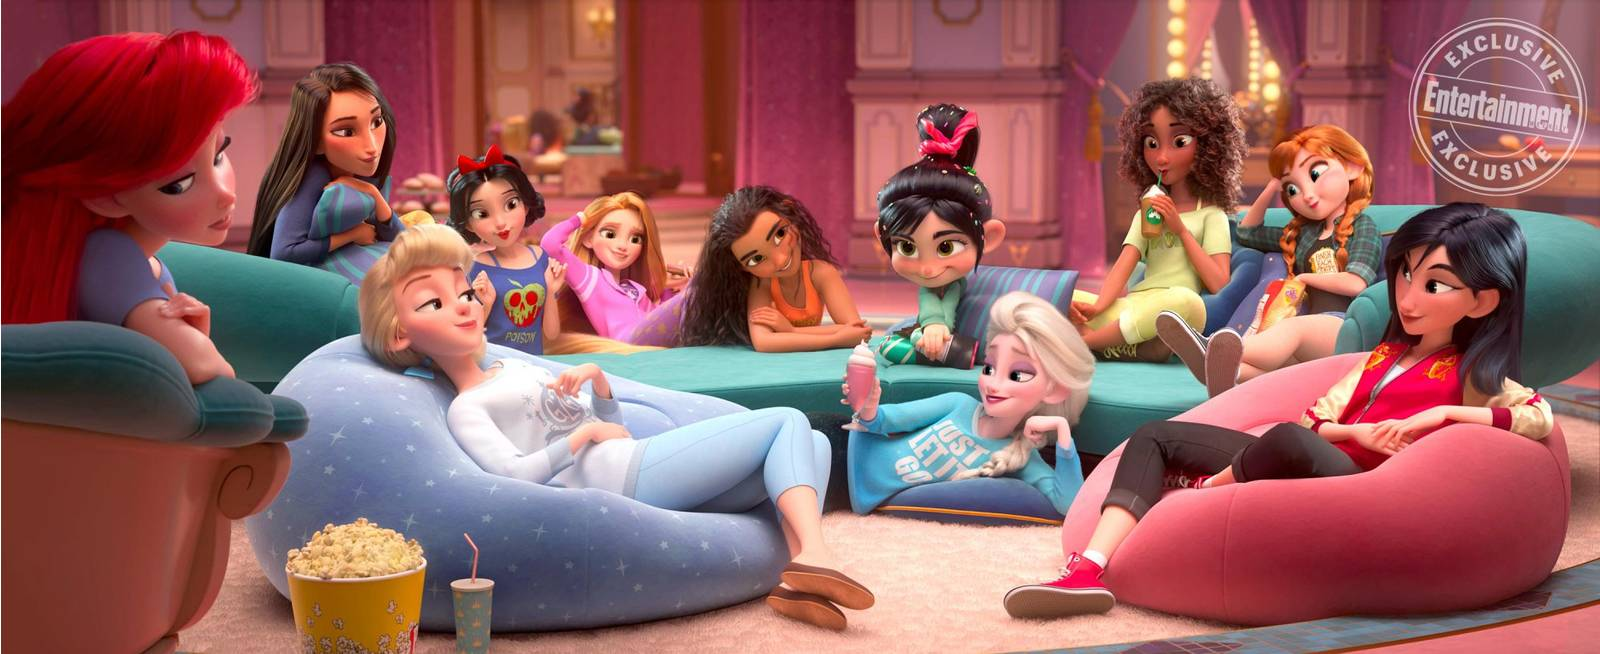 the-disney-princesses-get-new-outfits-in-photo-from-ralph-breaks-the-internet1